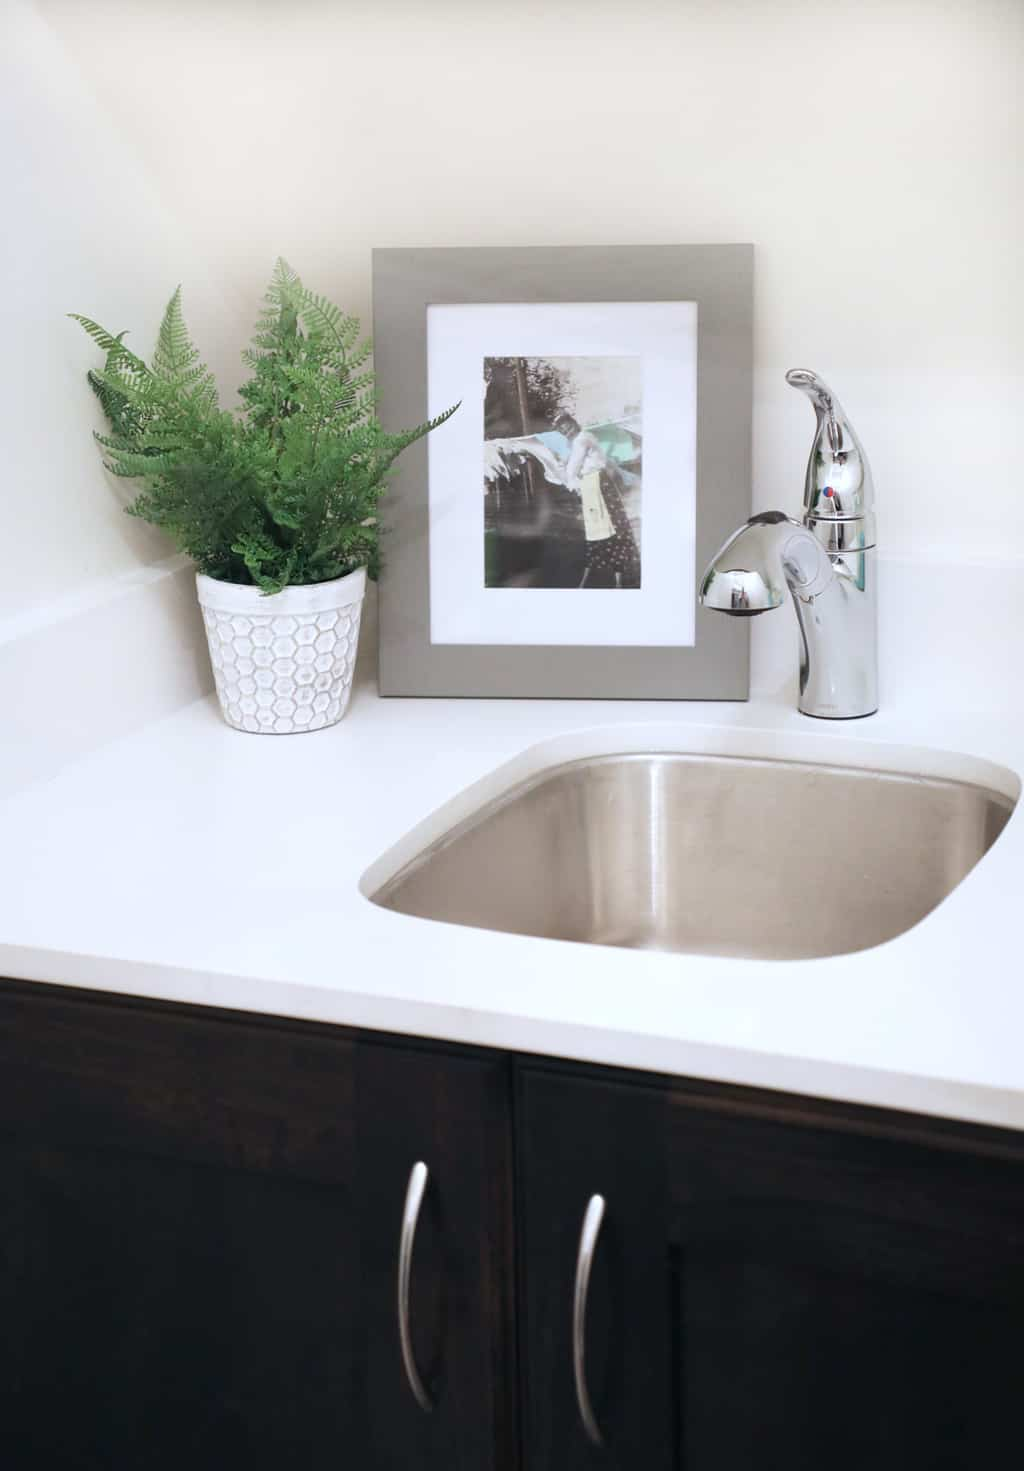 small corner sink in laundry room next to plant and picture frame